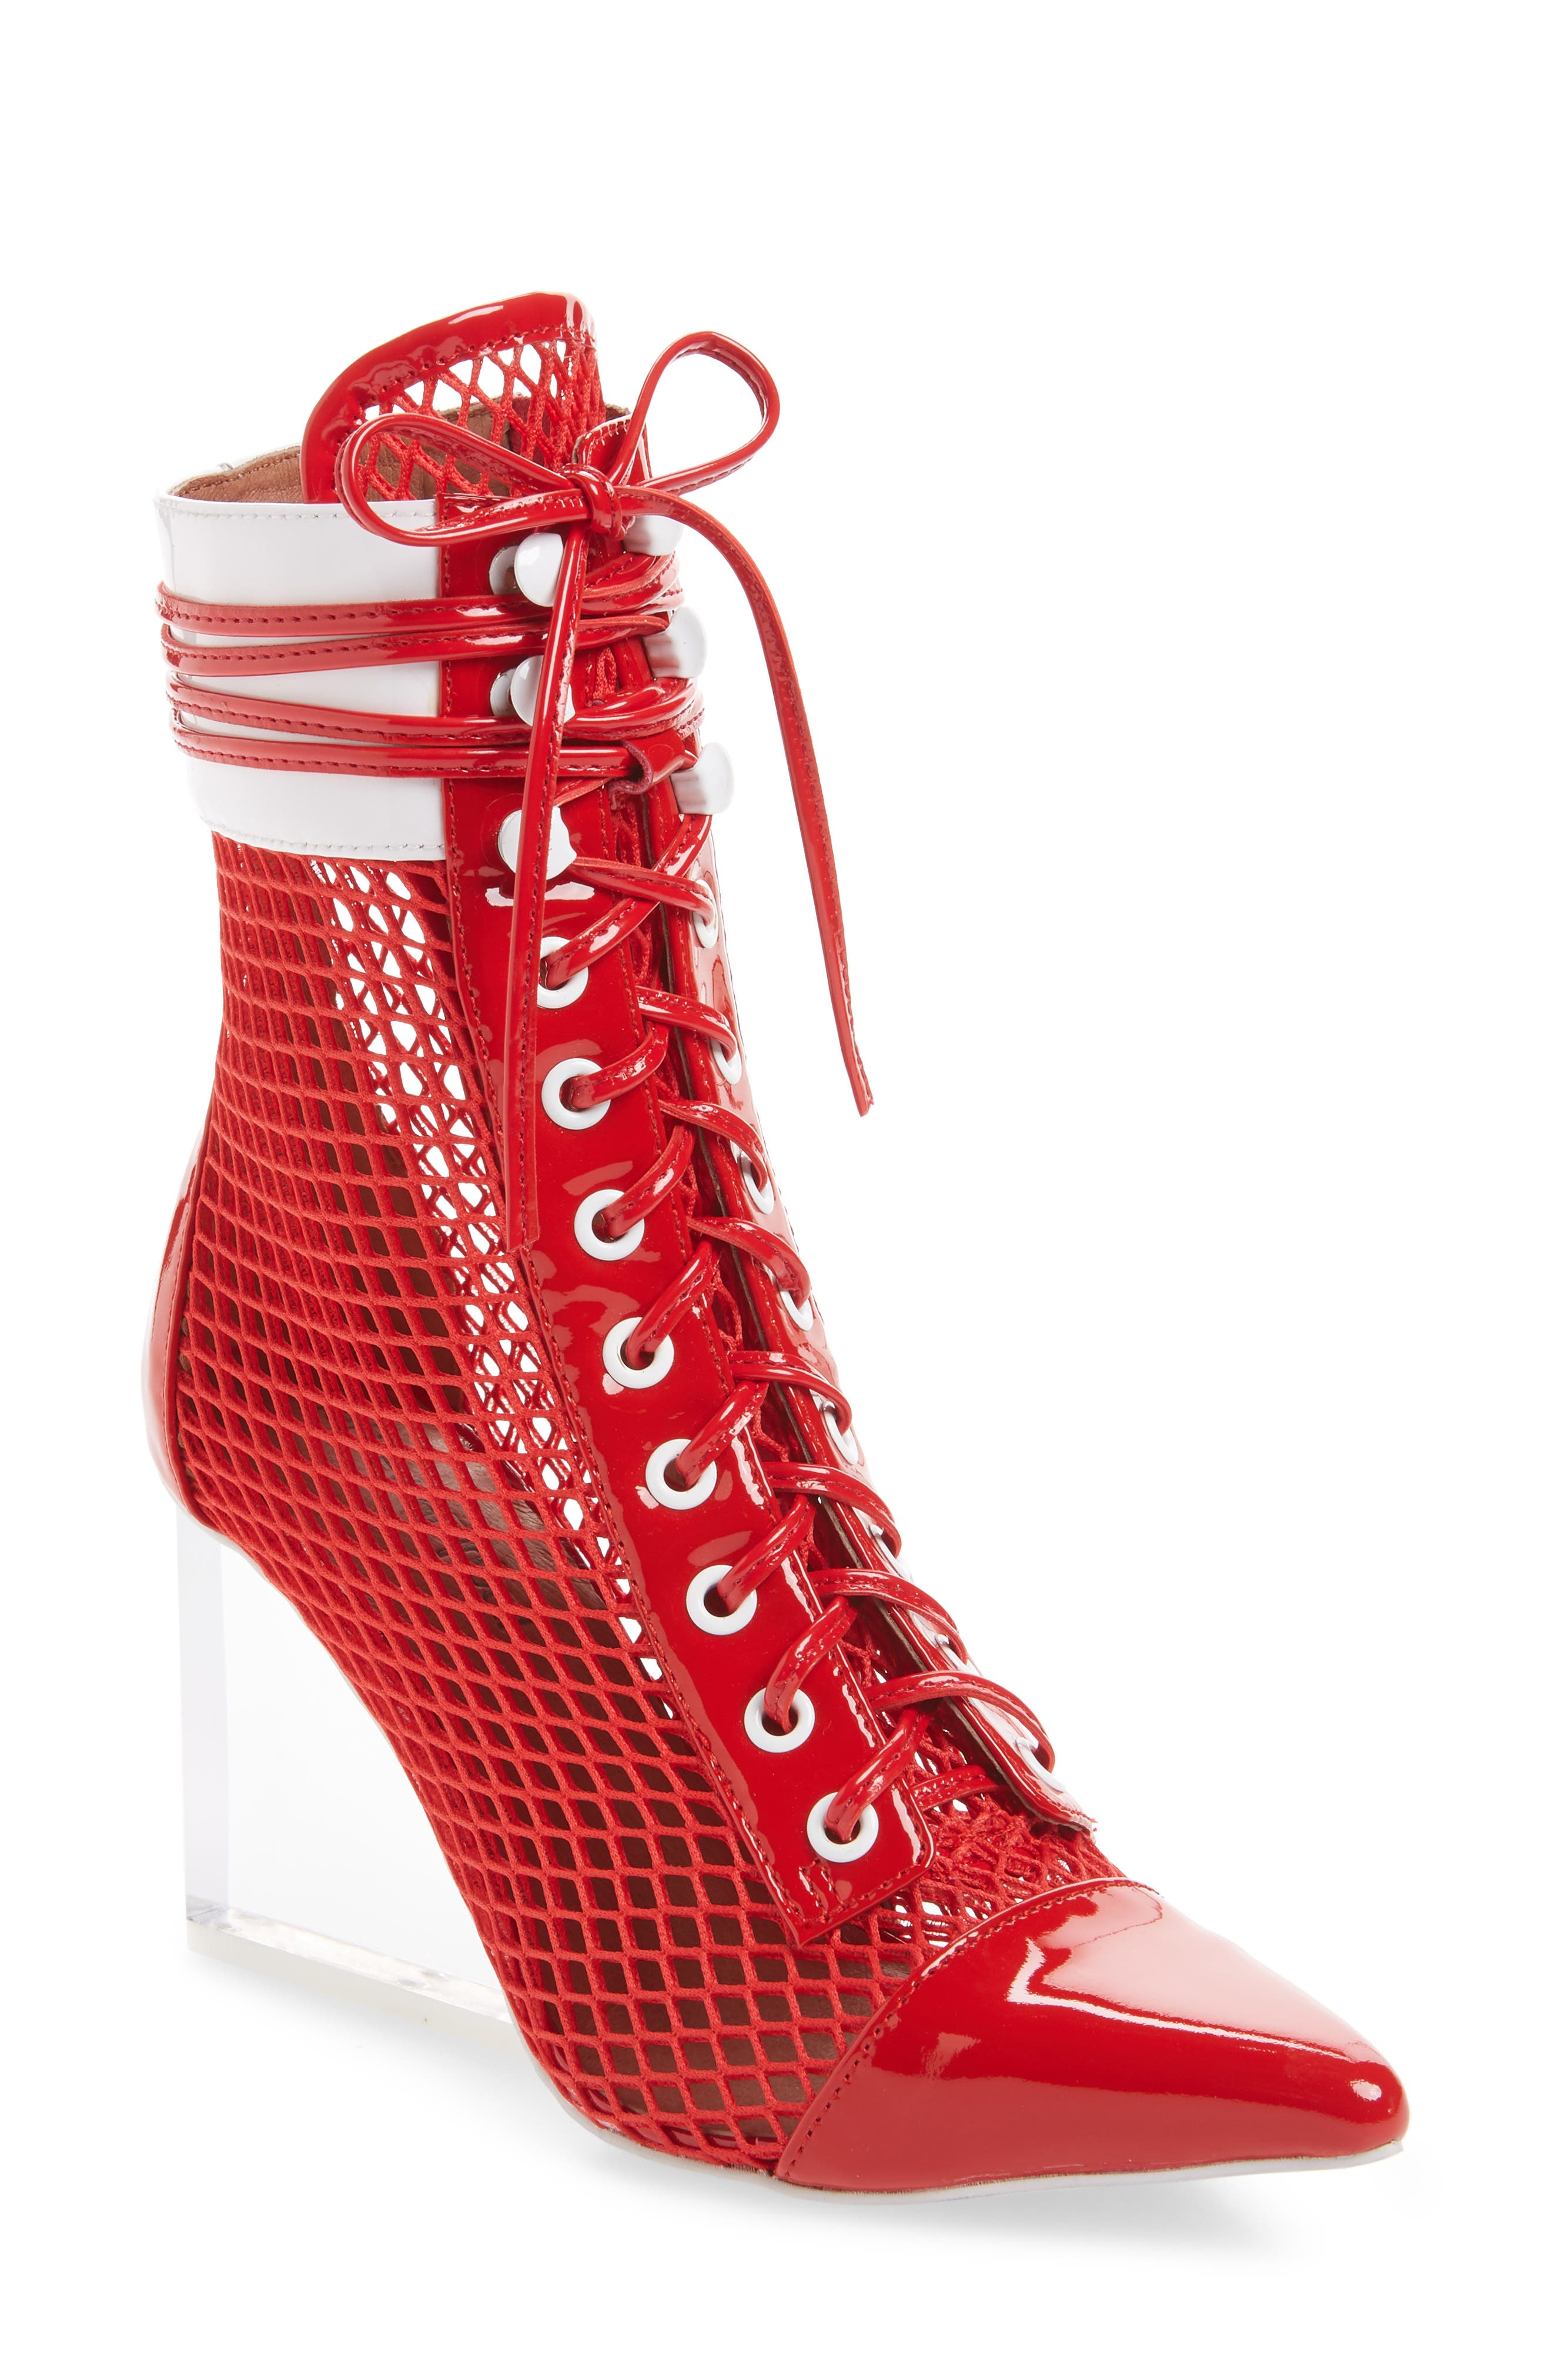 Cardi Mesh Bootie,                             Main thumbnail 1, color,                             Red/ White/ Clear